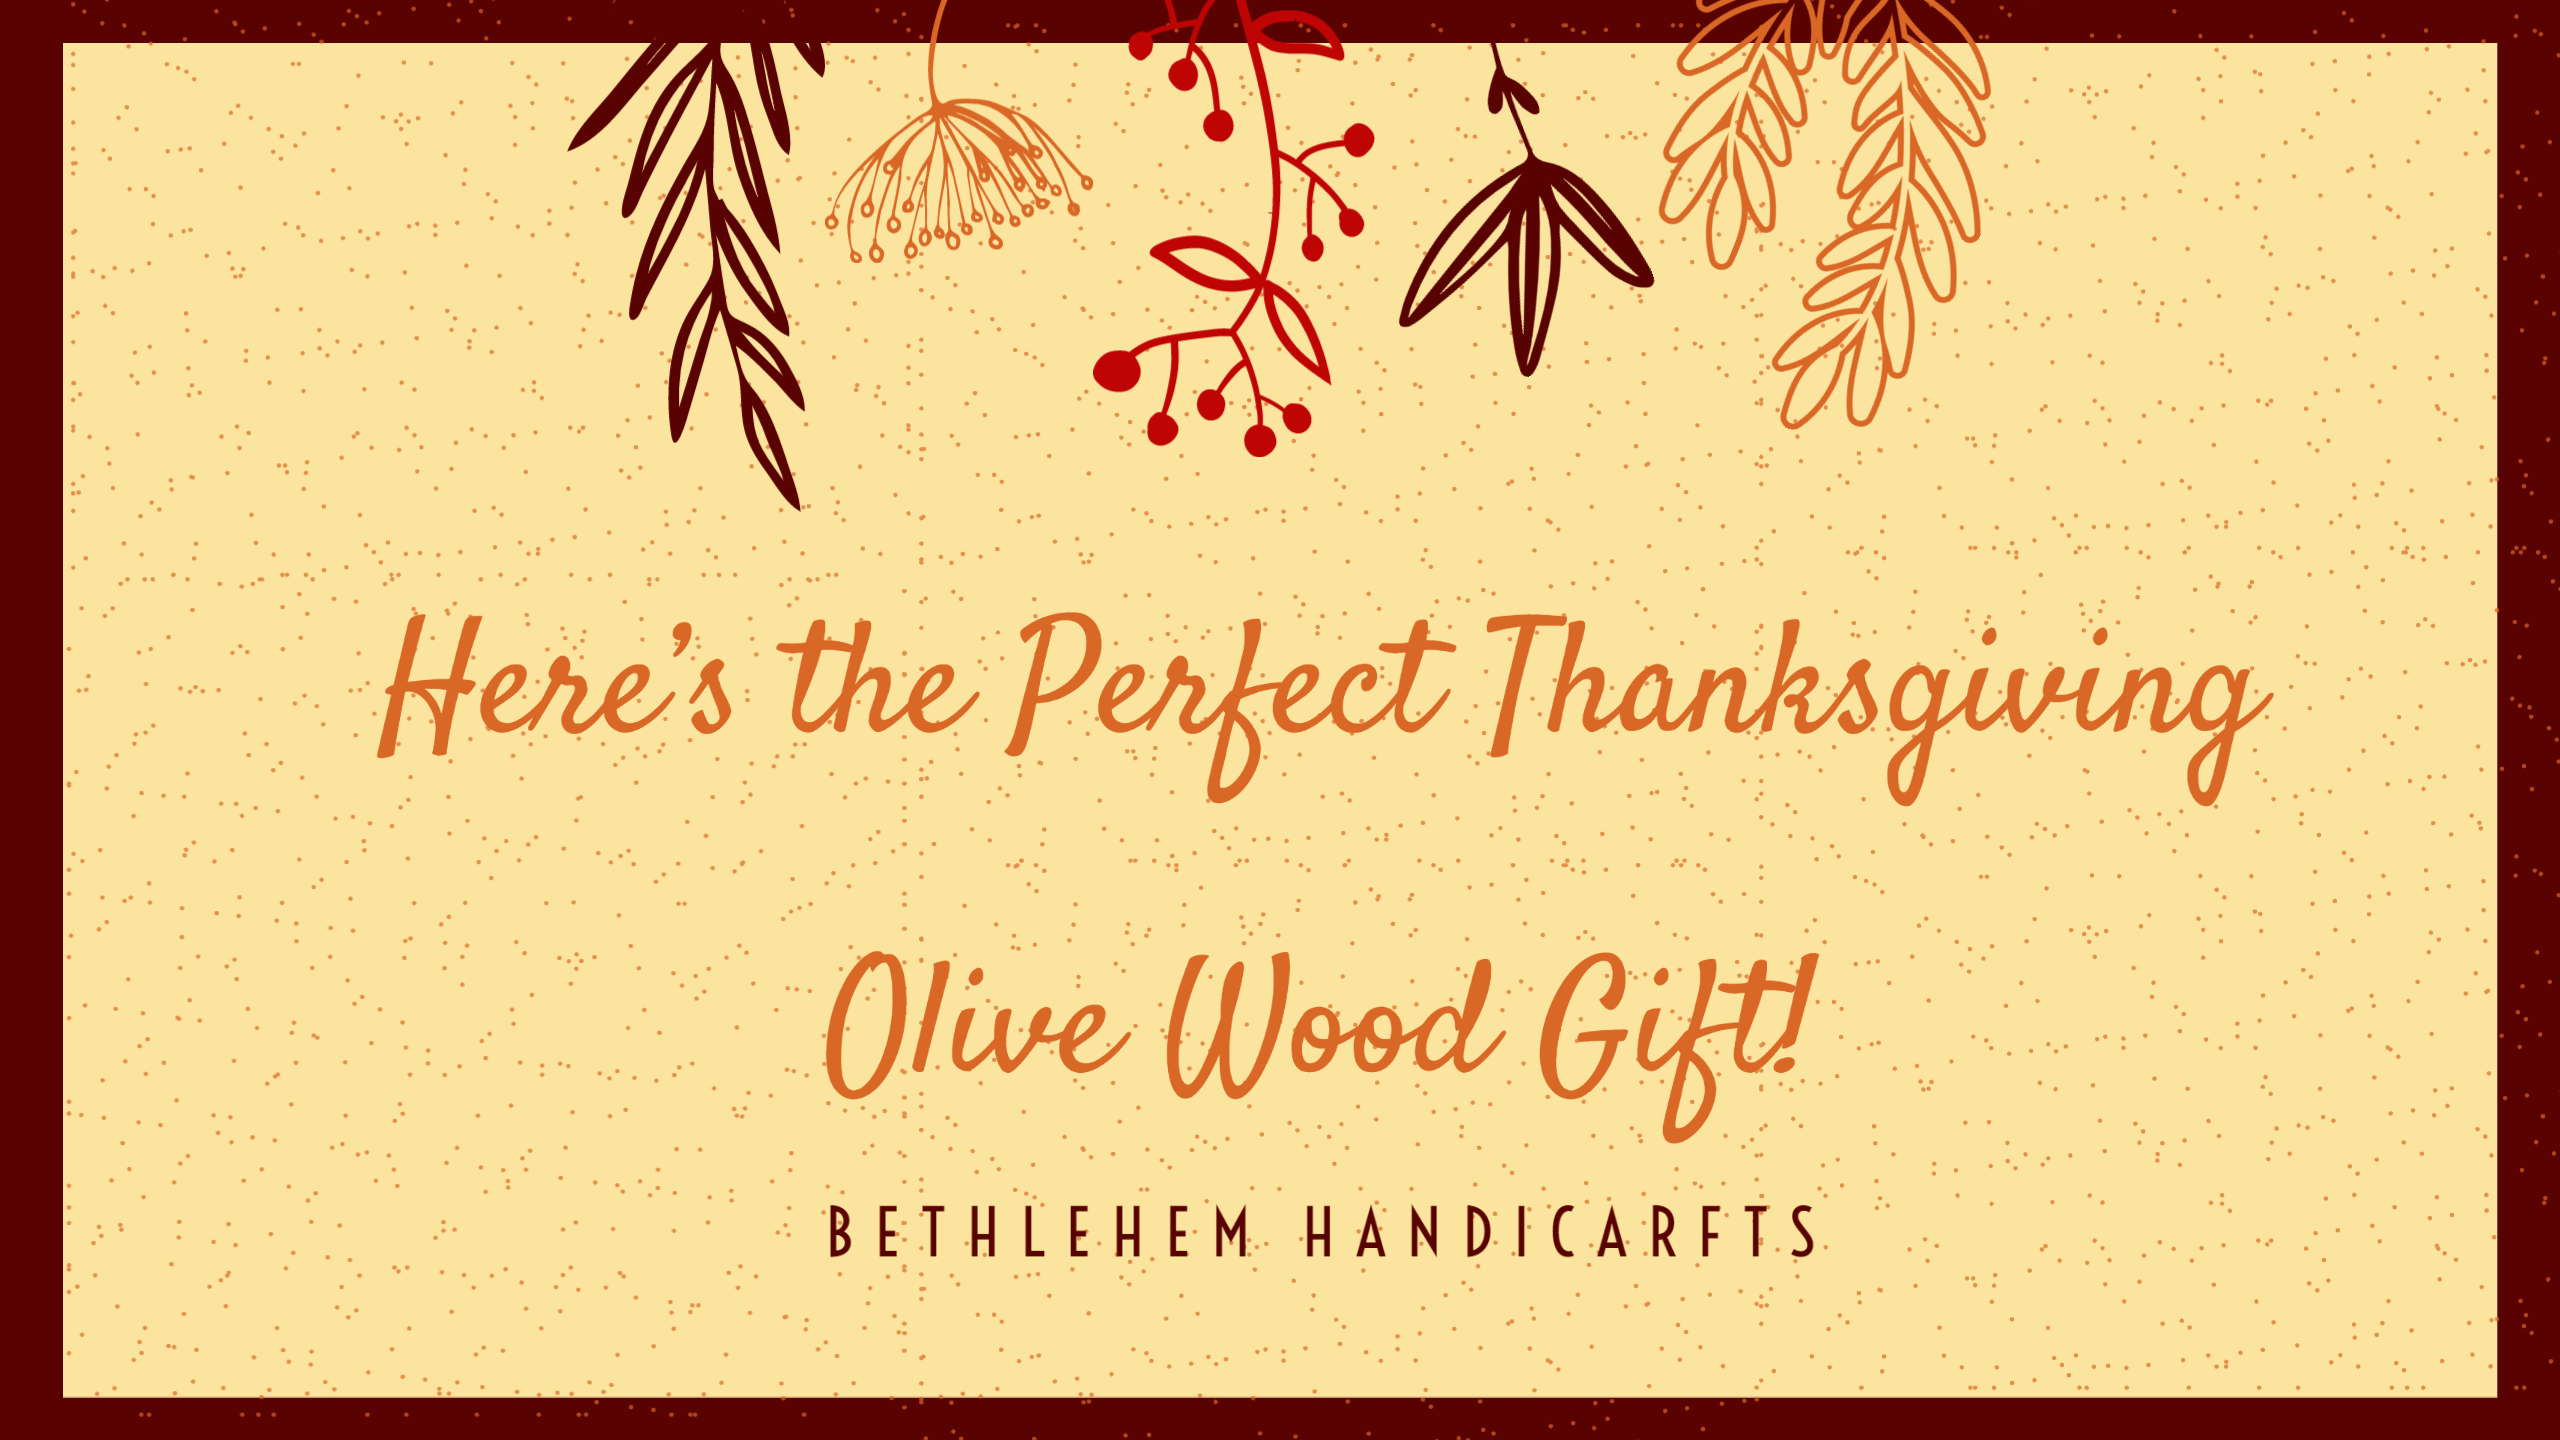 Here's the Perfect Thanksgiving Olive Wood Gift!